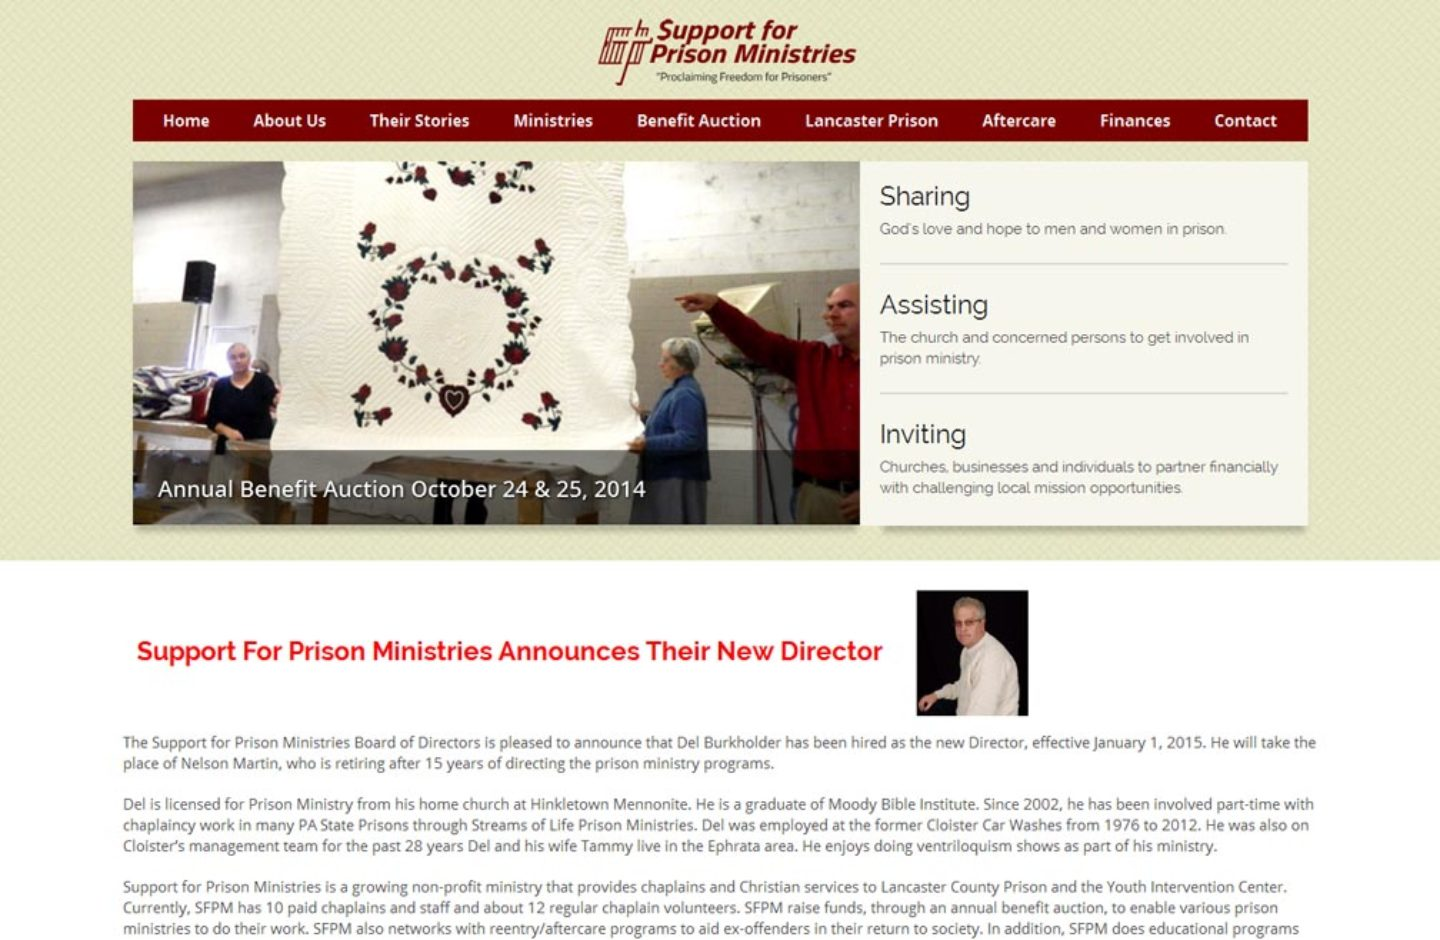 Support for Prison Ministries